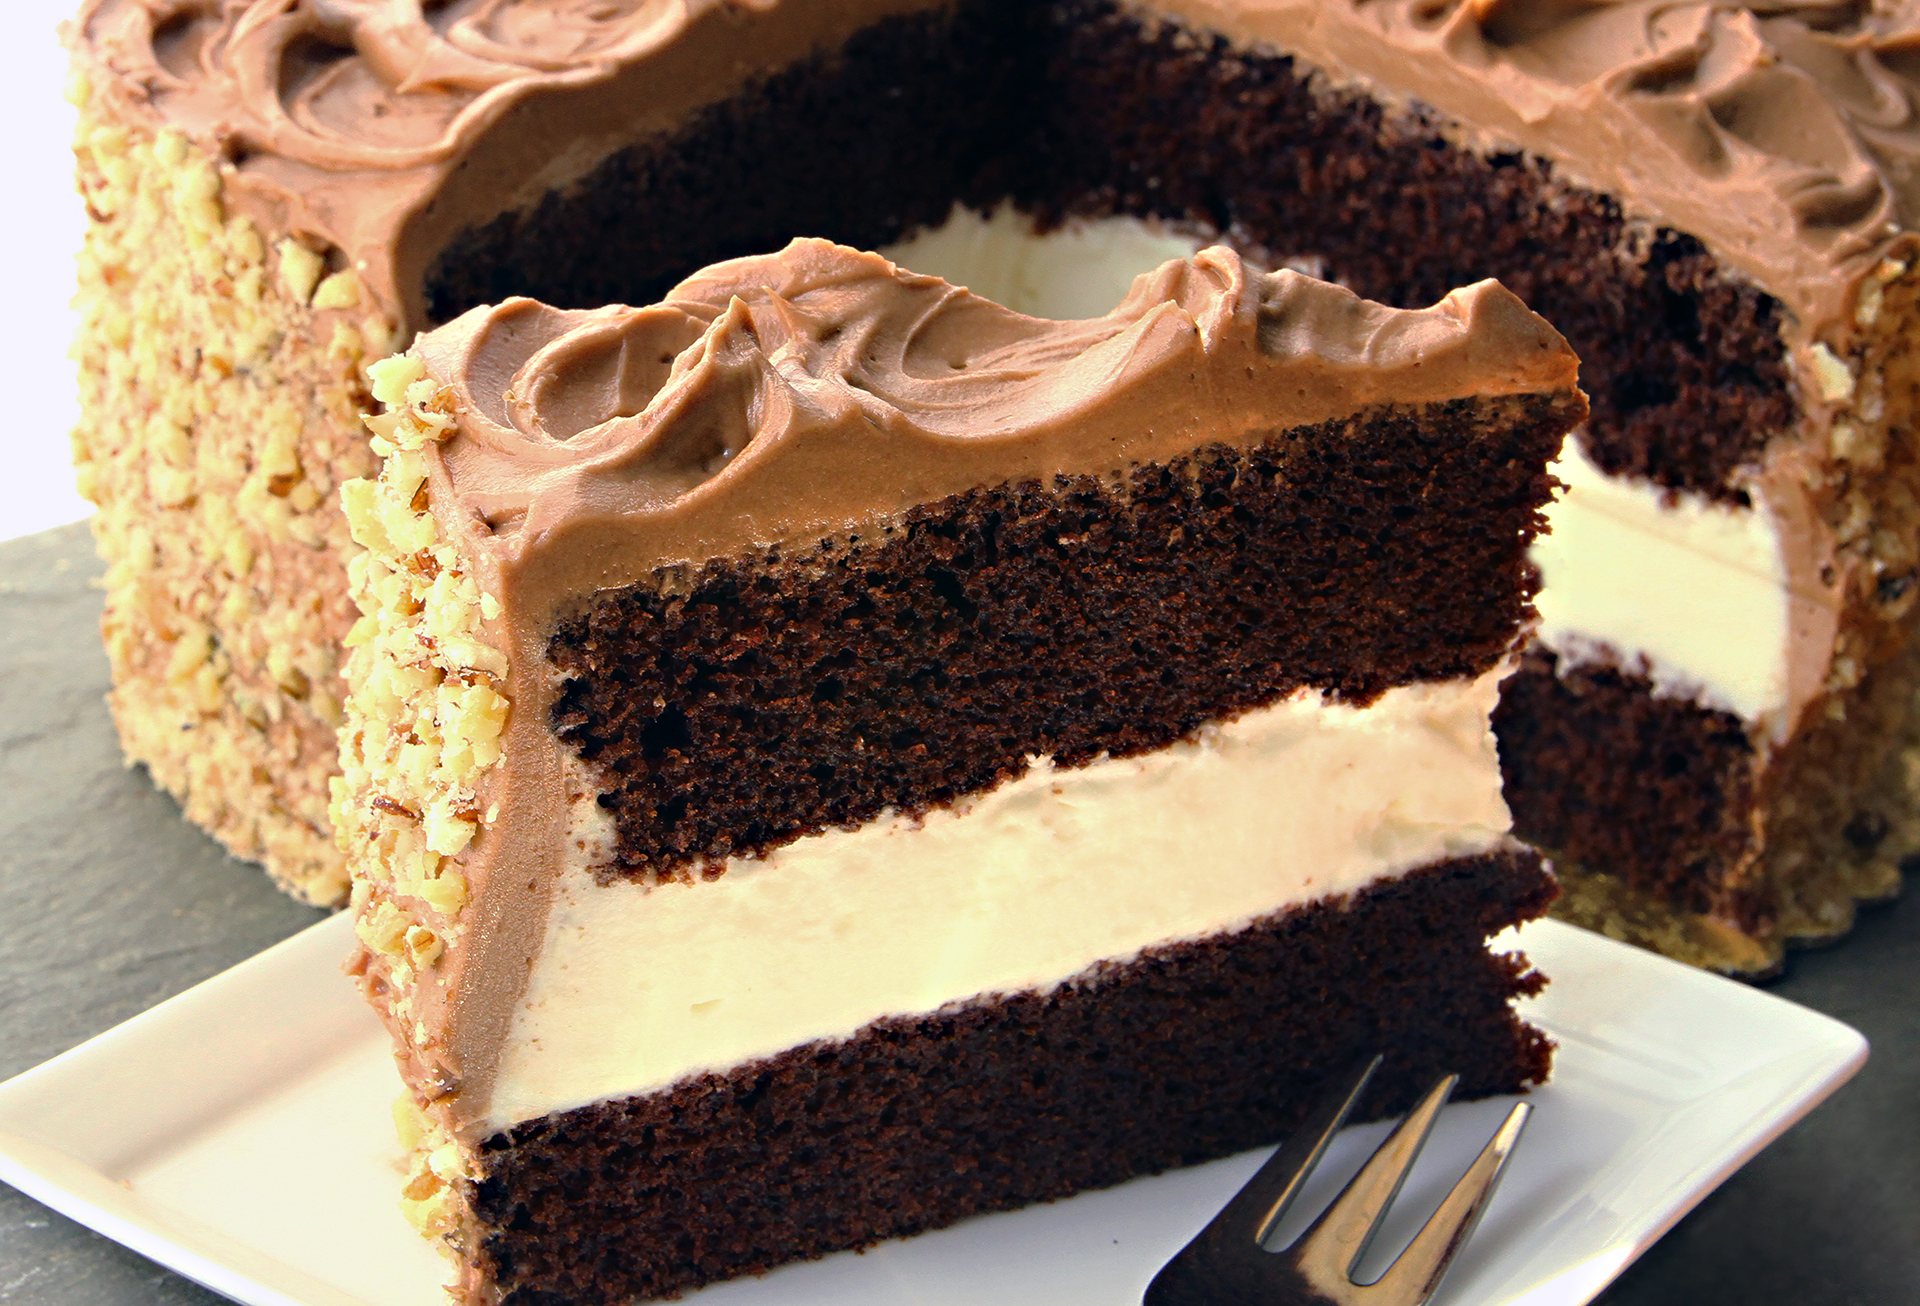 Dressel's Chocolate Fudge Whipped Cream Cake